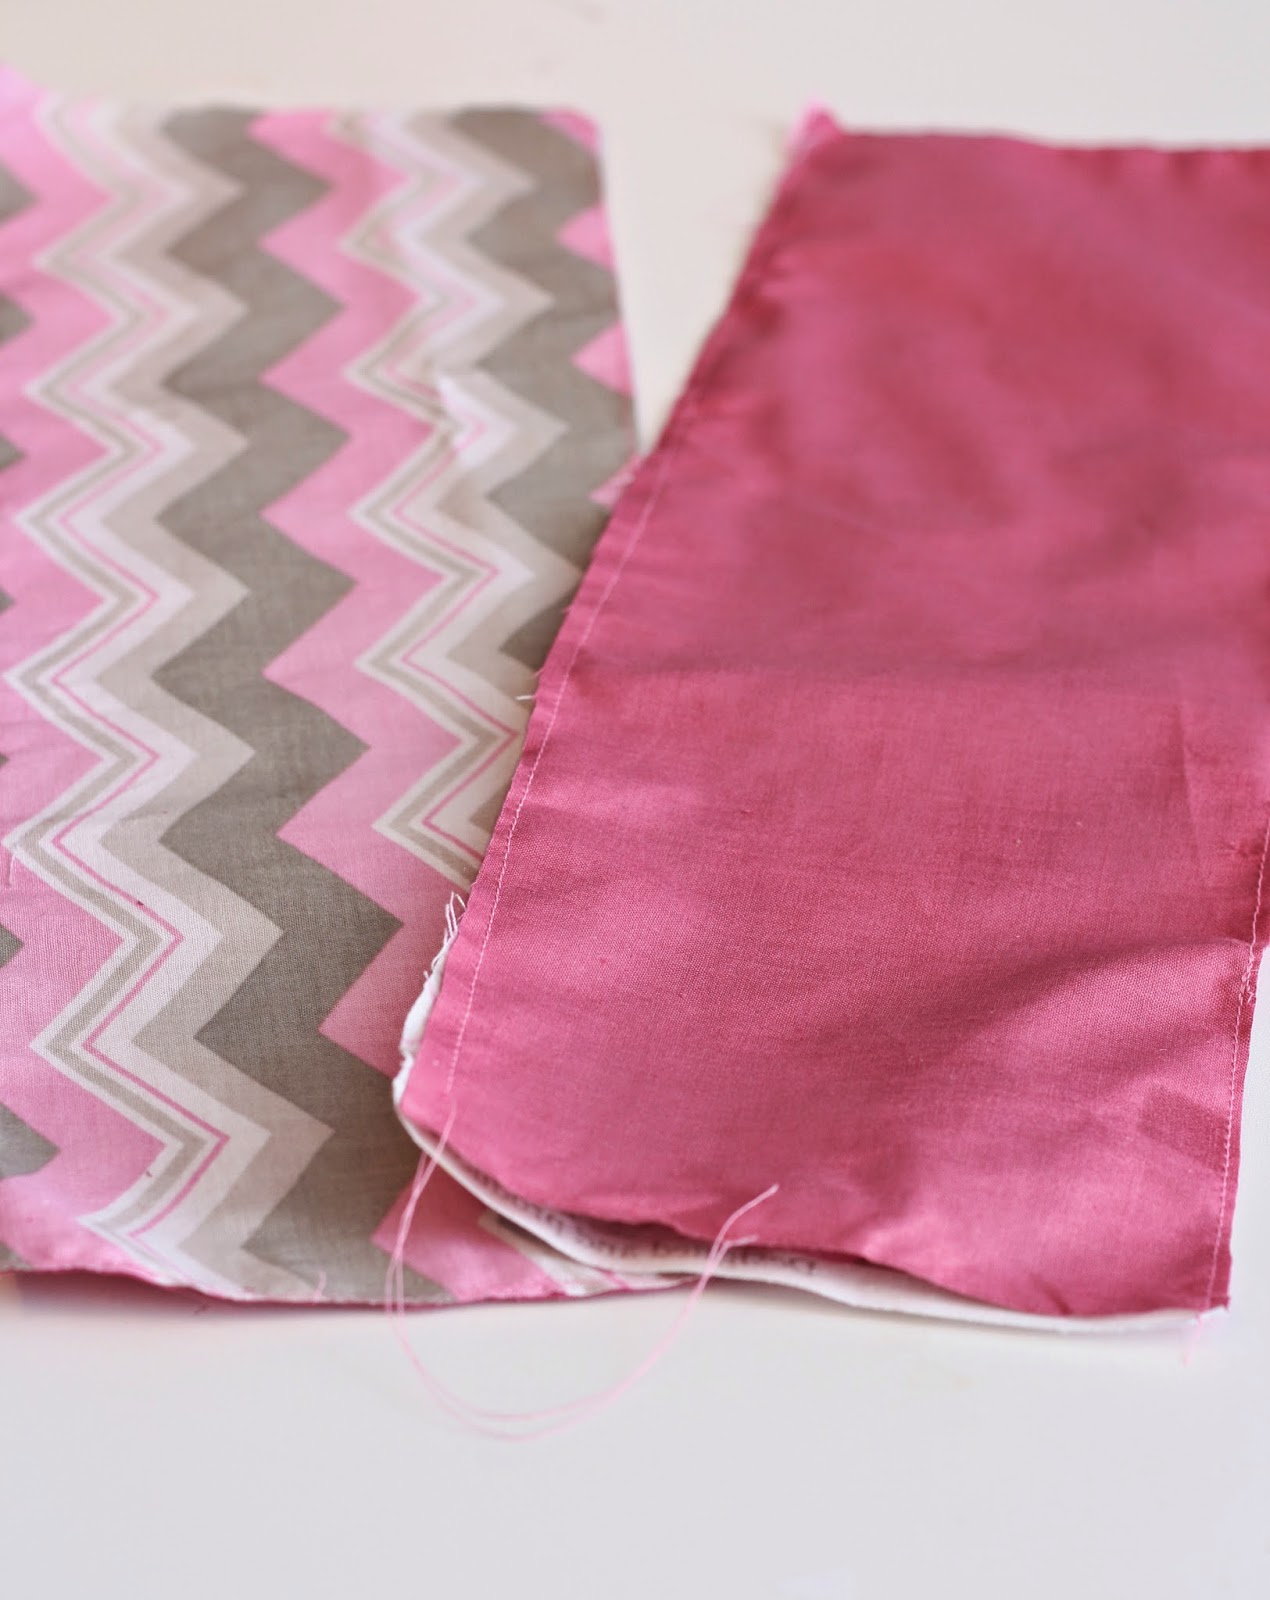 DIY Rice Neck Warmer {guest post on Apples to Applique}   Crafty Allie